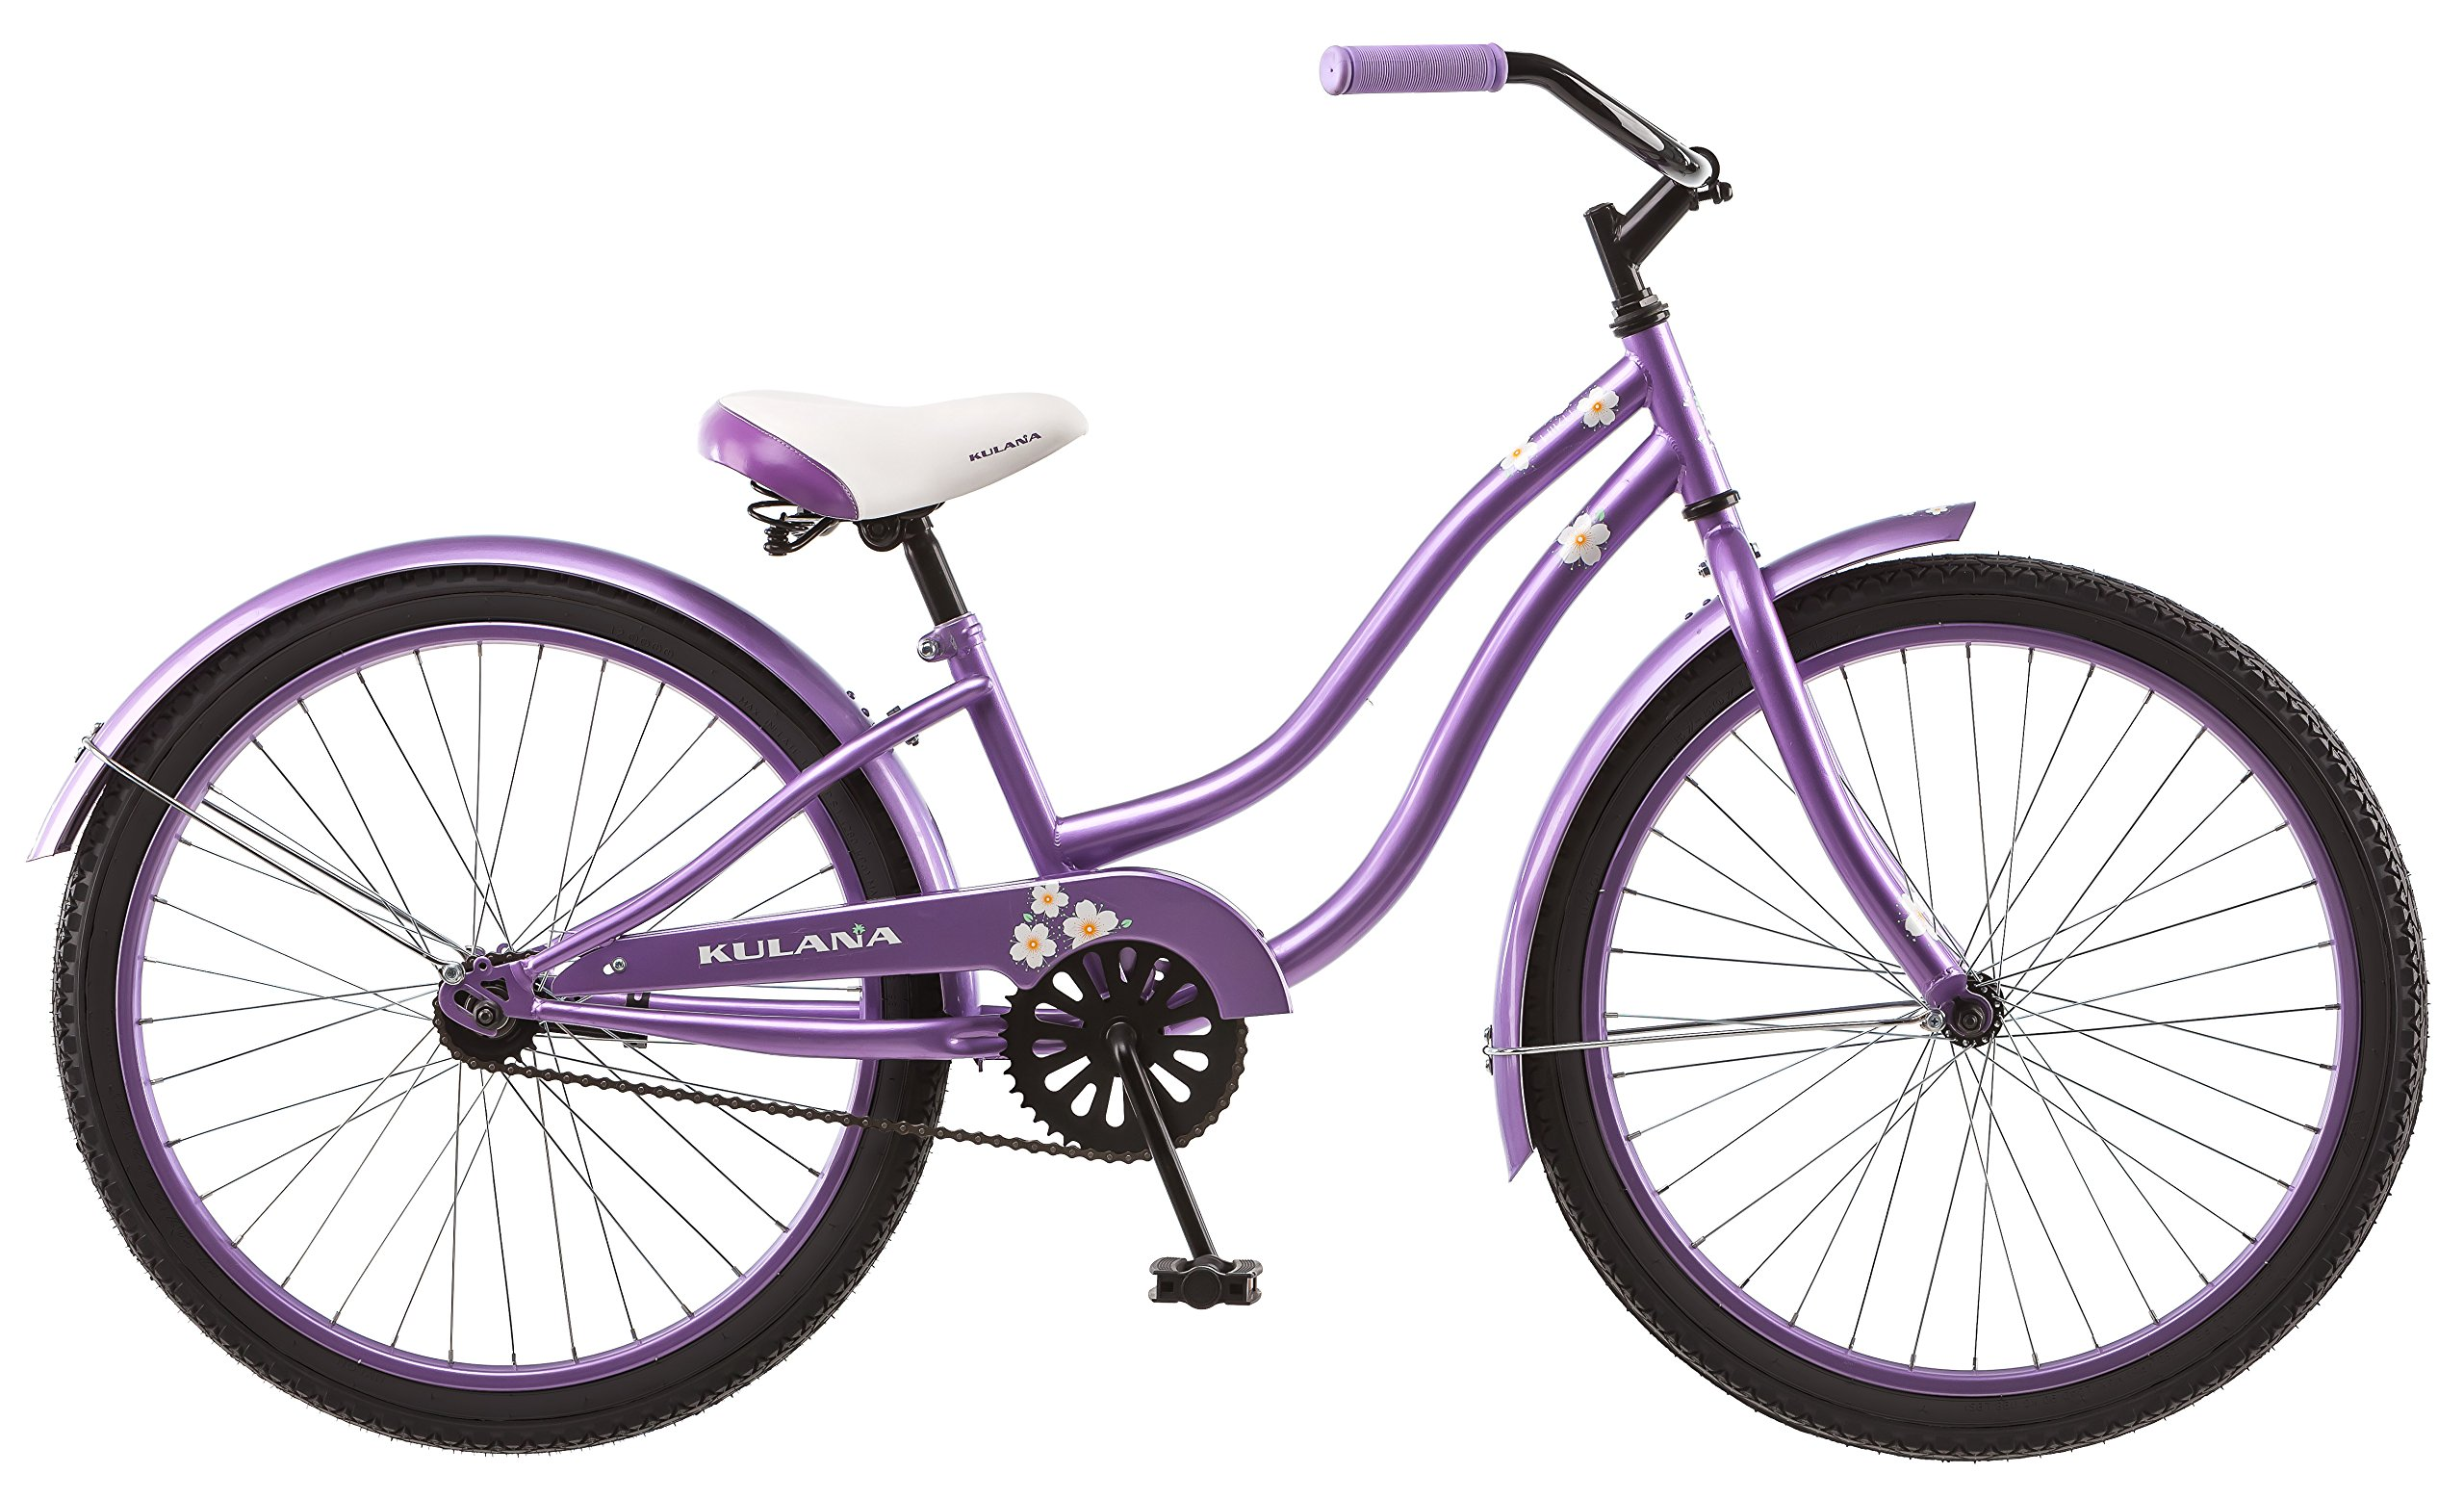 Kulana Girls Hiku Cruiser Bicycle with 24'' Wheels, Purple, 12''/Small frame size